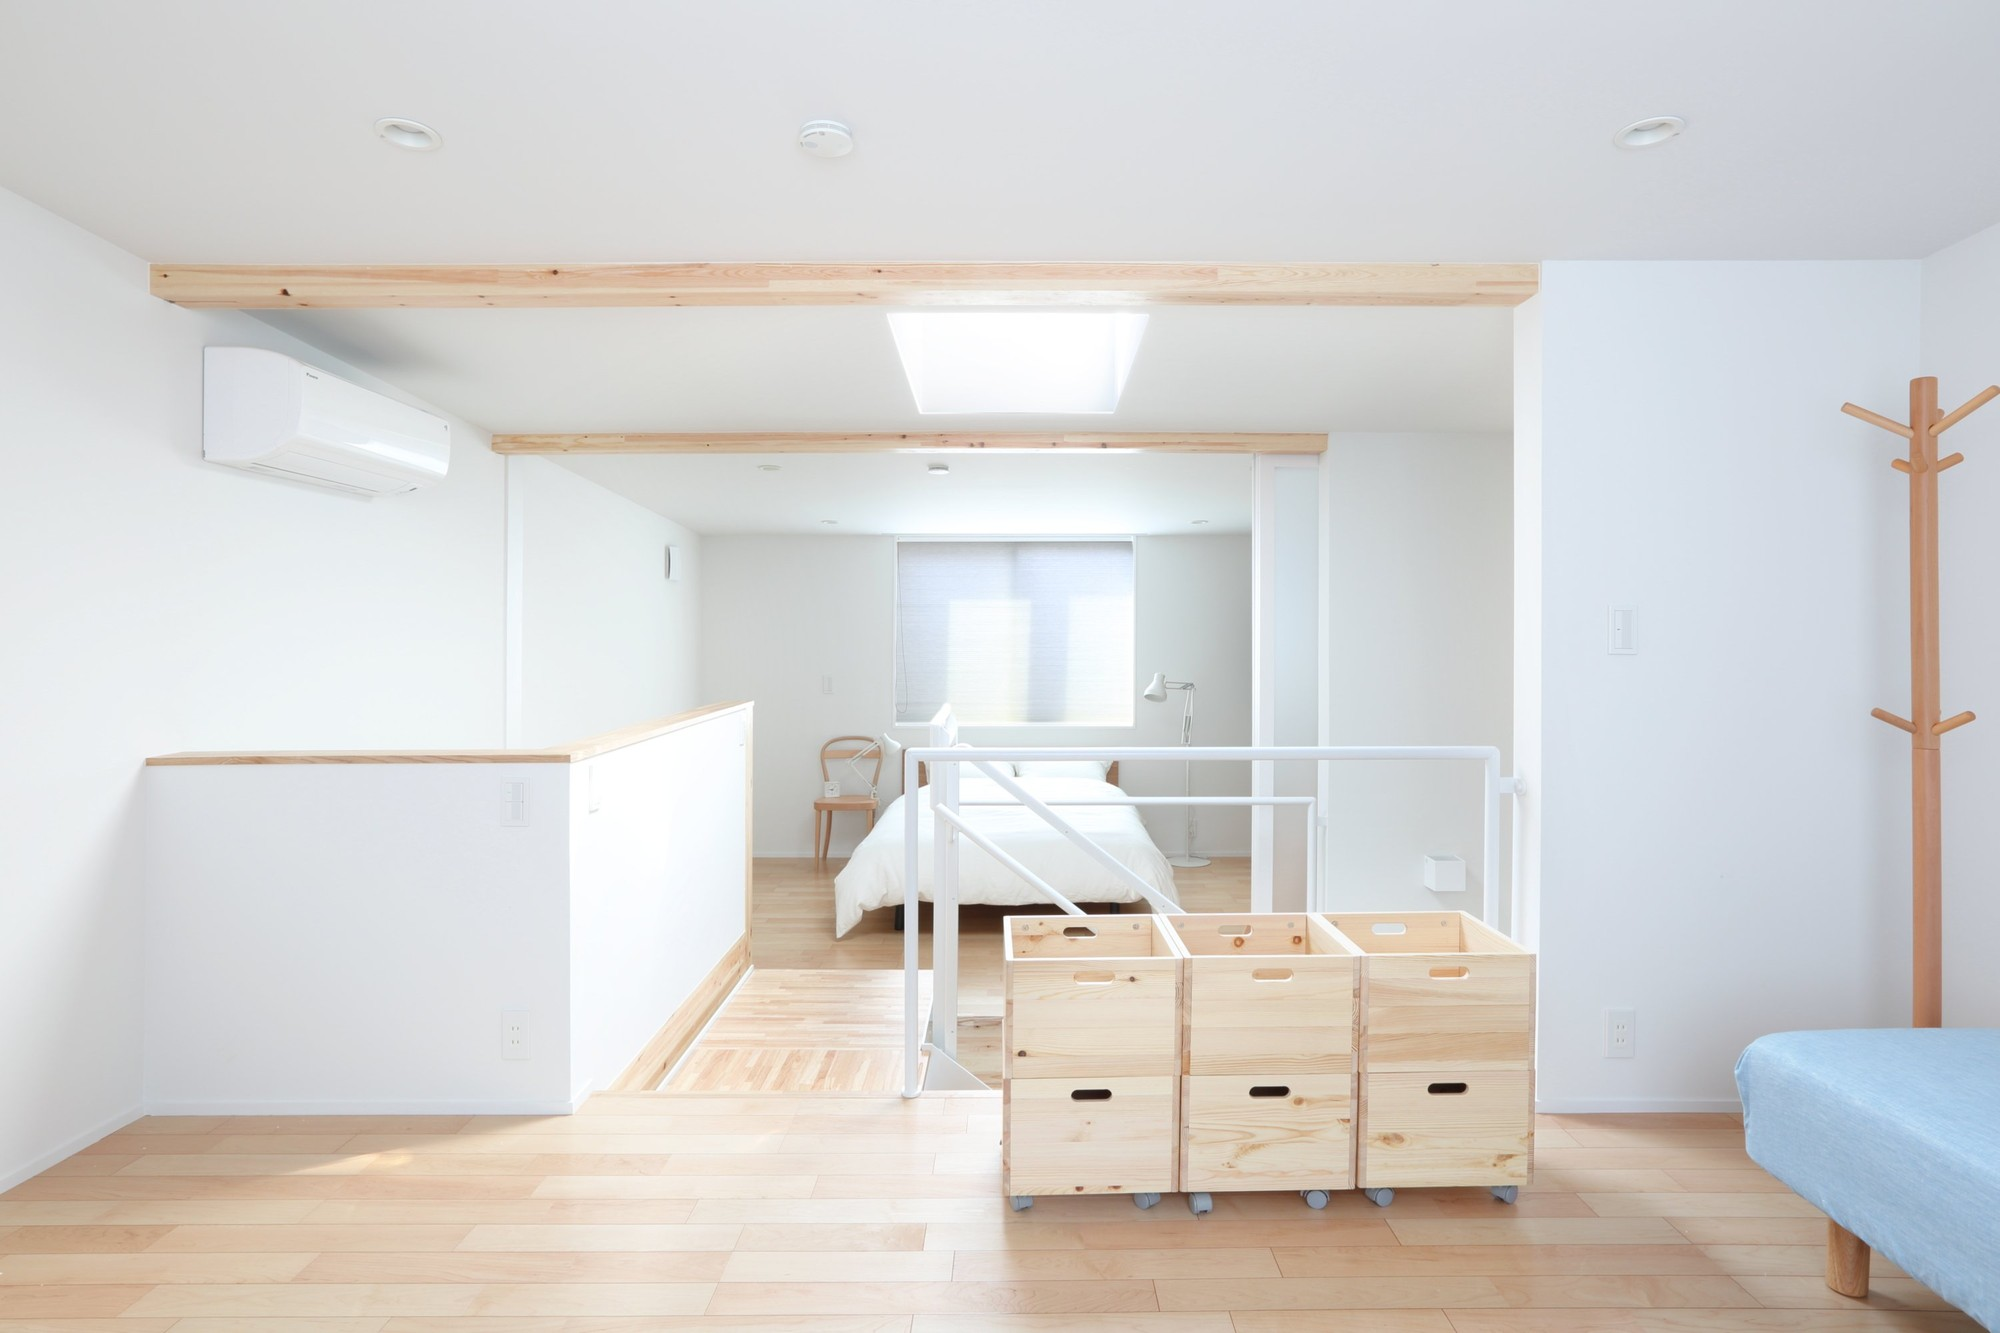 gallery of design your own home with muji's prefab vertical house - 8